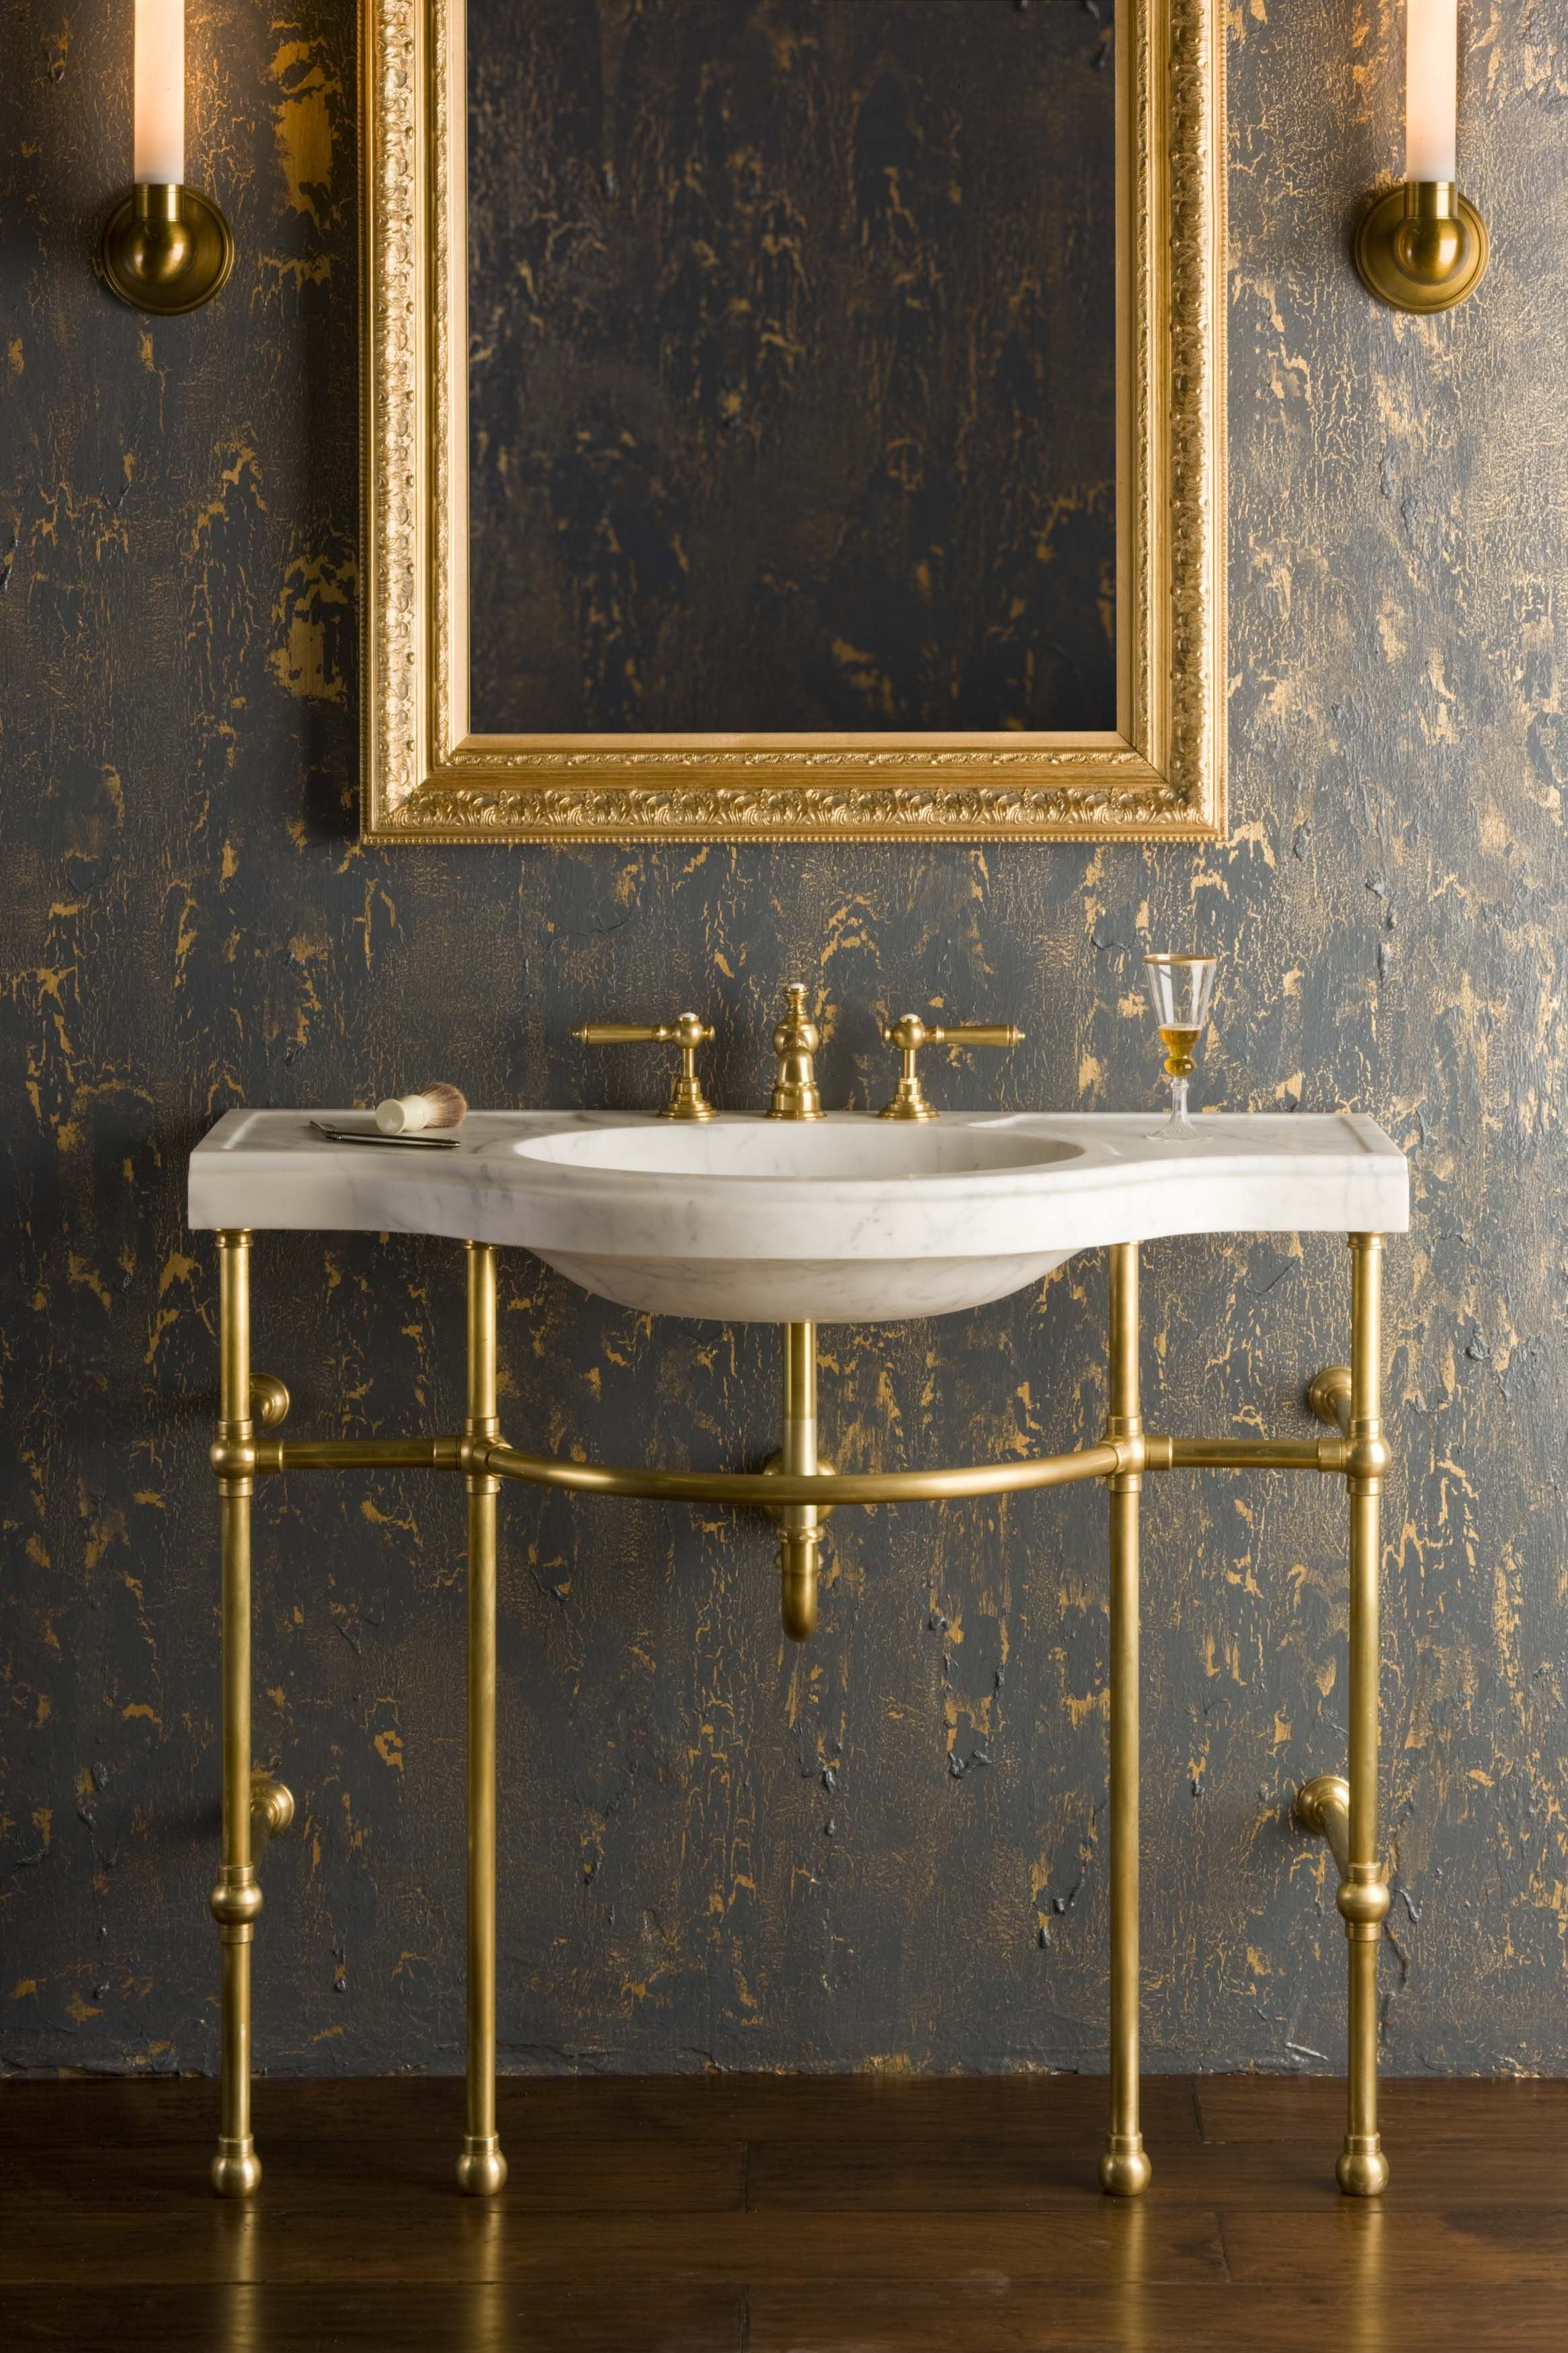 Bathroom Sinks Marble 4-leg curved console shown in brass with carrara marble sink